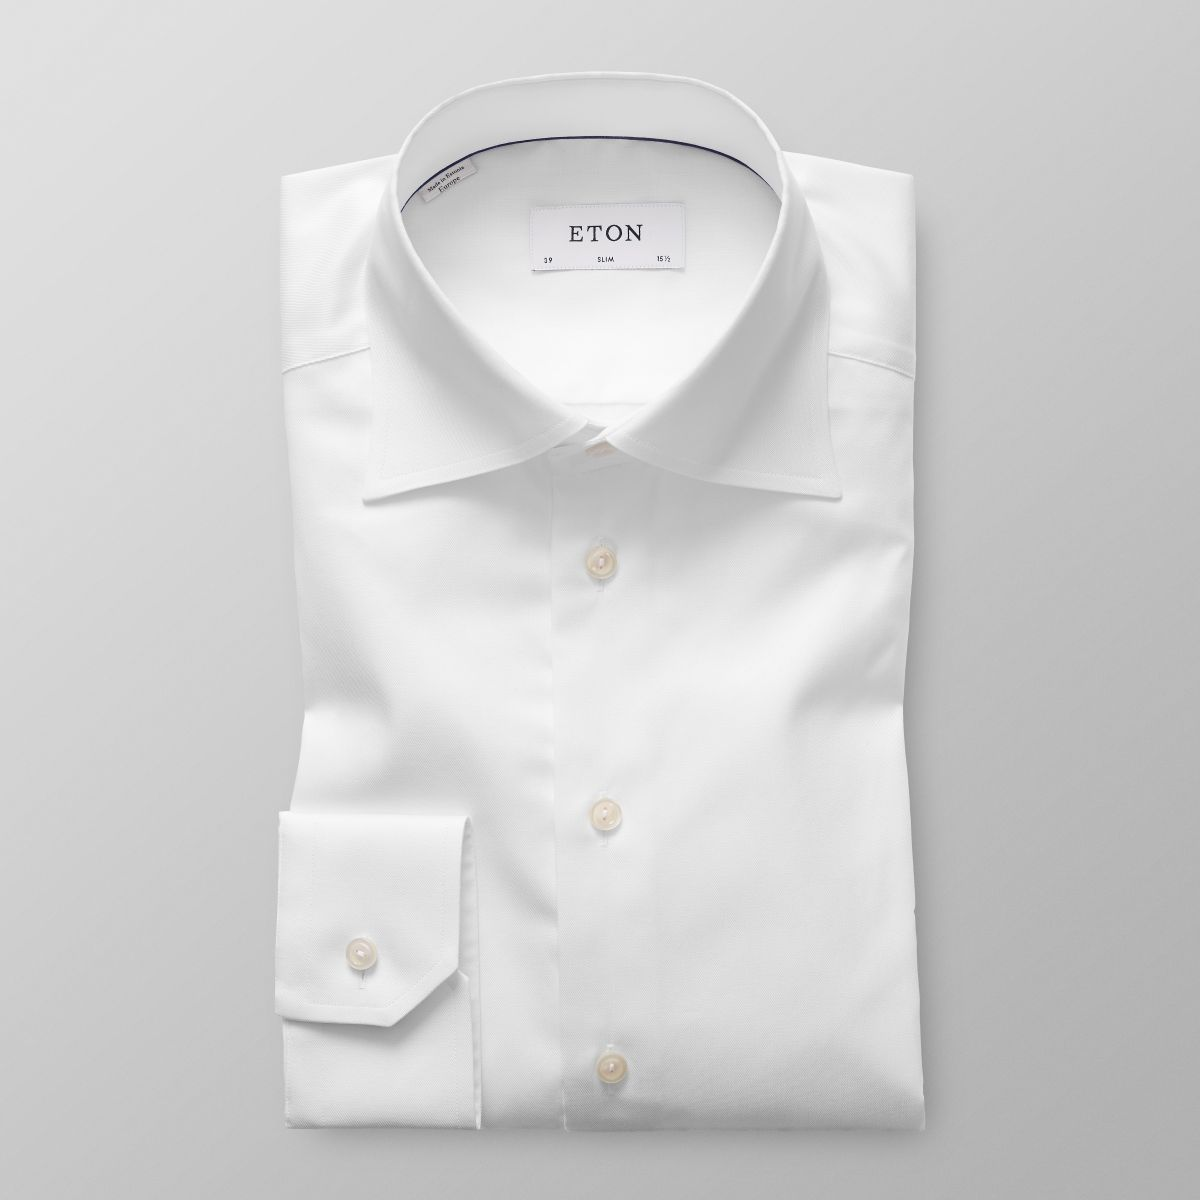 White High Cutaway Shirt Slim Eton Shirts Uk